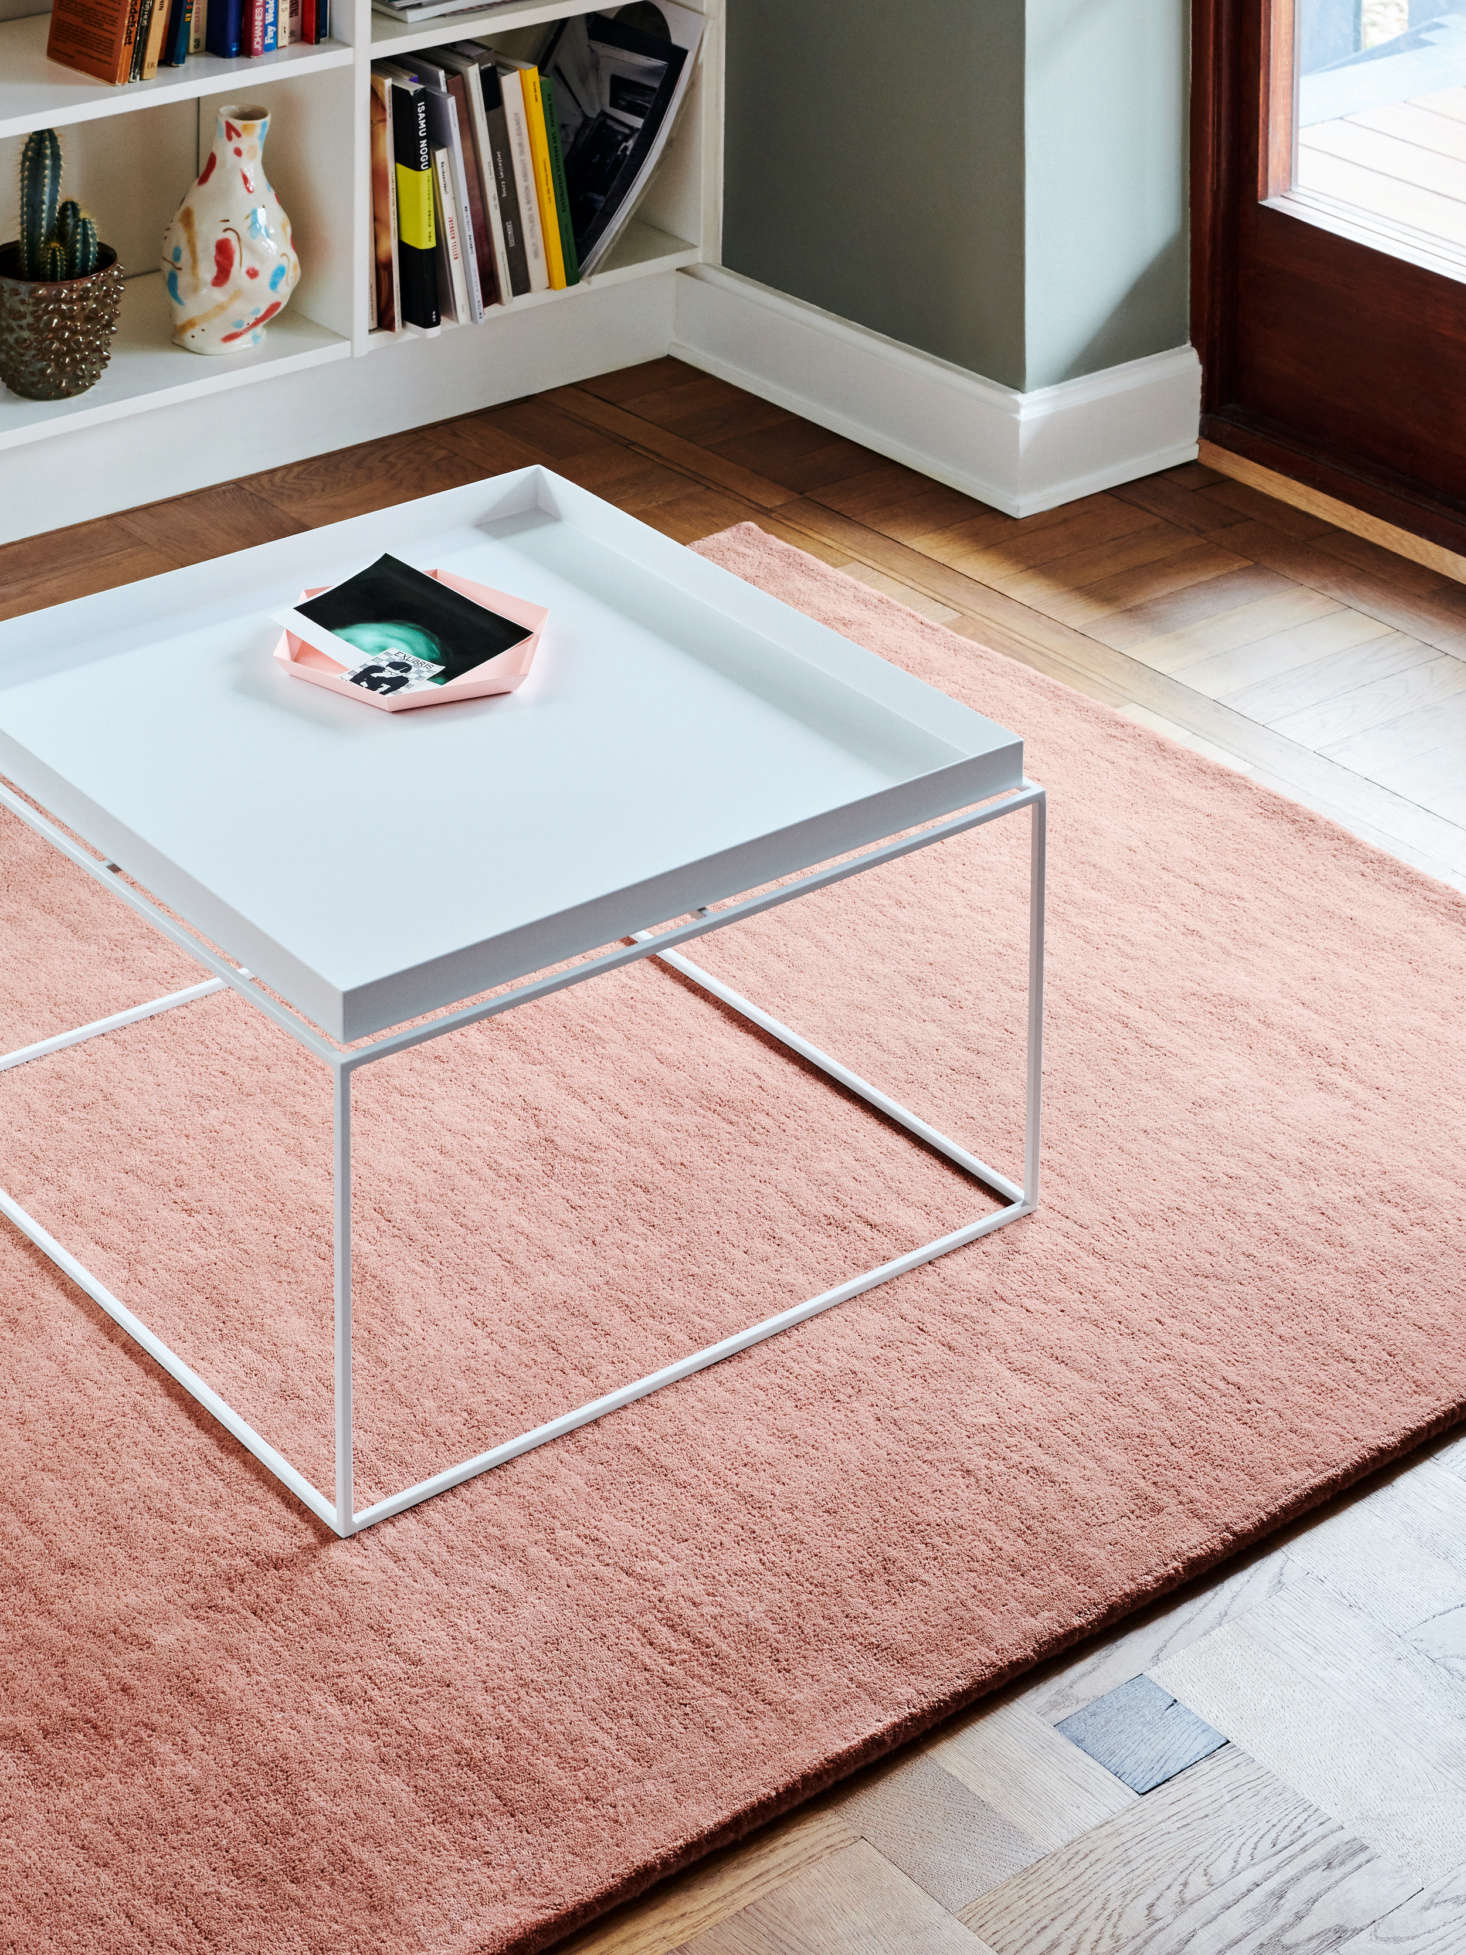 The Tray Coffee Table ($5) can actually be used as a bedside table or—with the top detached—as a tray. It's also available in black, chocolate (a deep red-brown), and grey.